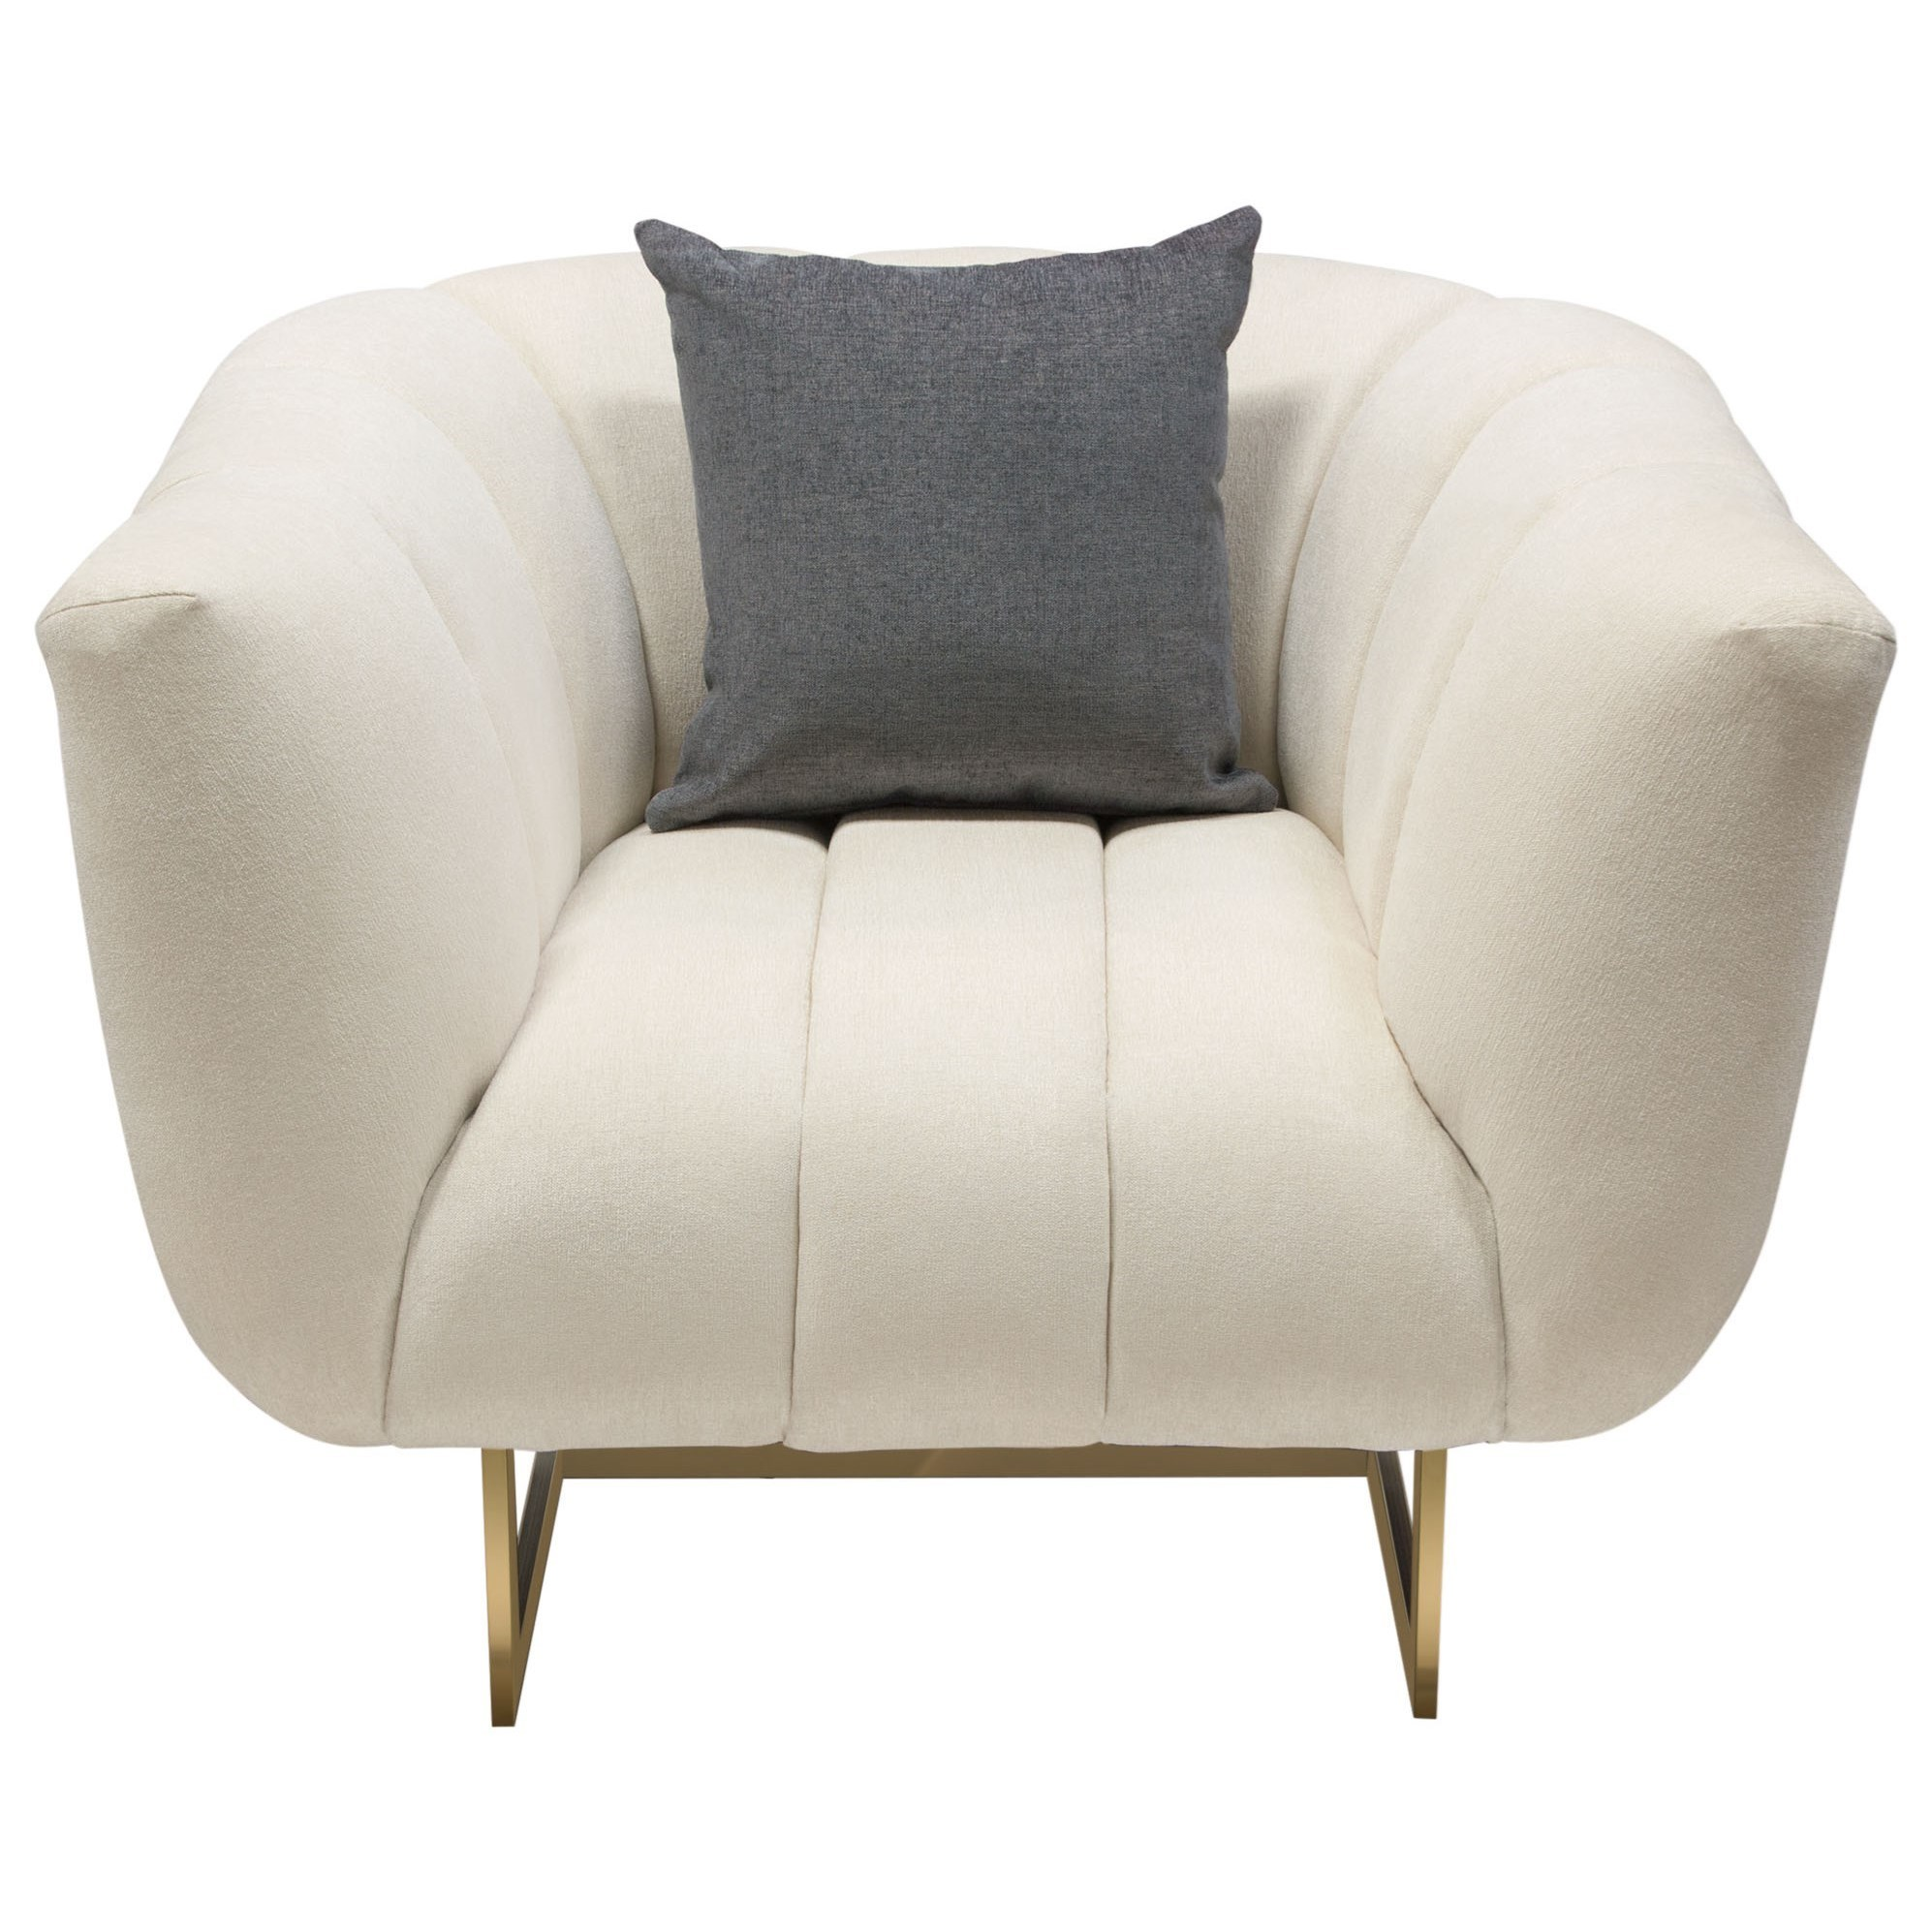 Venus Chair by Diamond Sofa at Red Knot